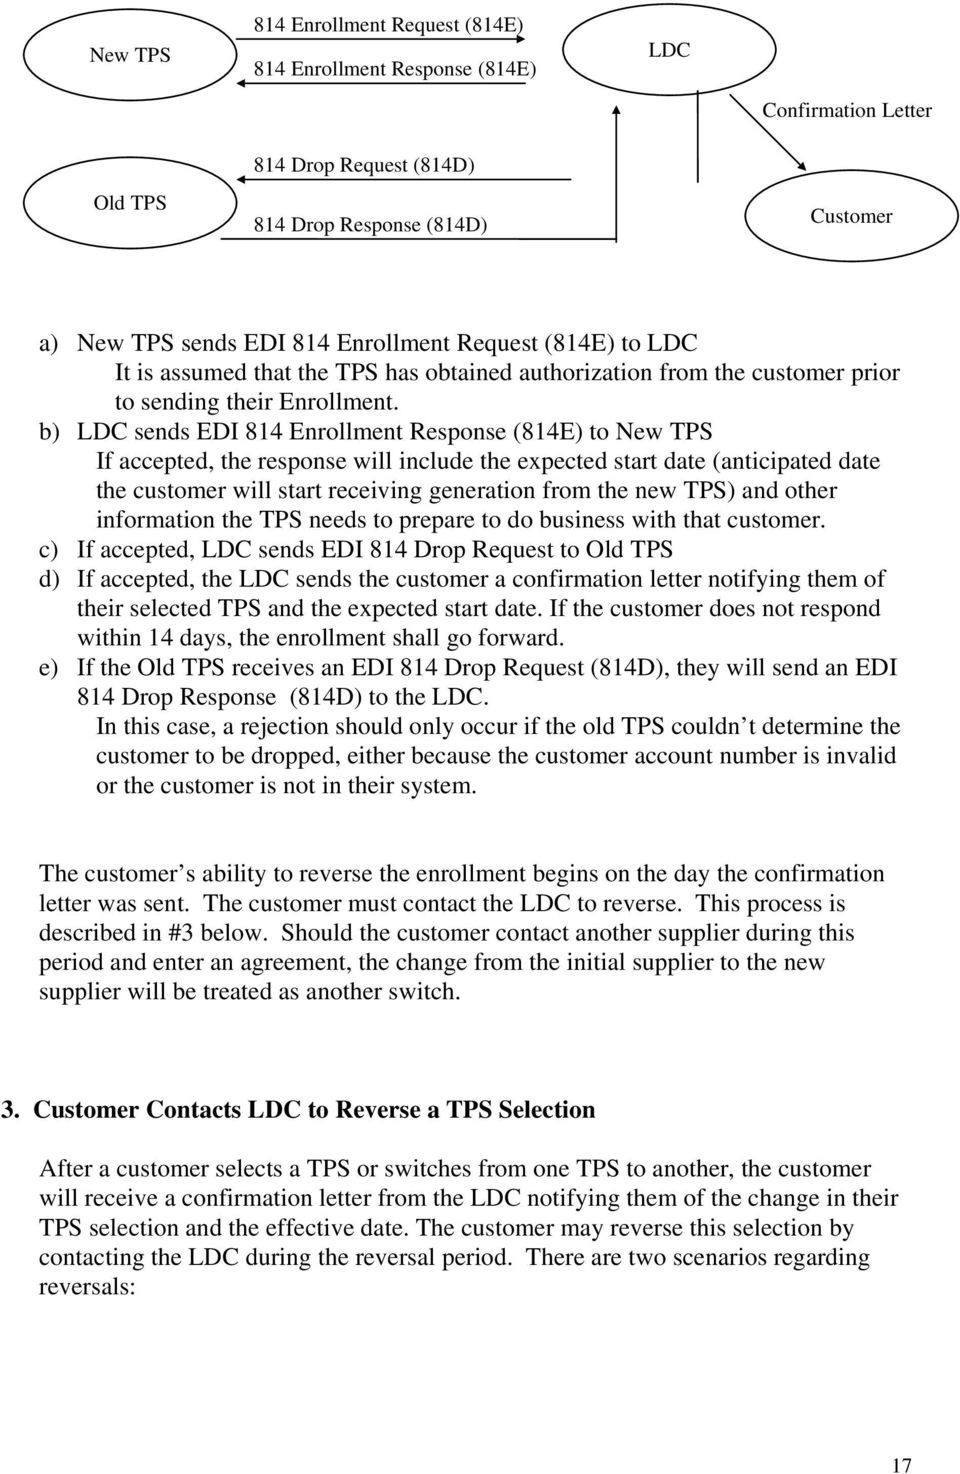 b) LDC sends EDI 814 Enrollment Response (814E) to New TPS If accepted, the response will include the expected start date (anticipated date the customer will start receiving generation from the new